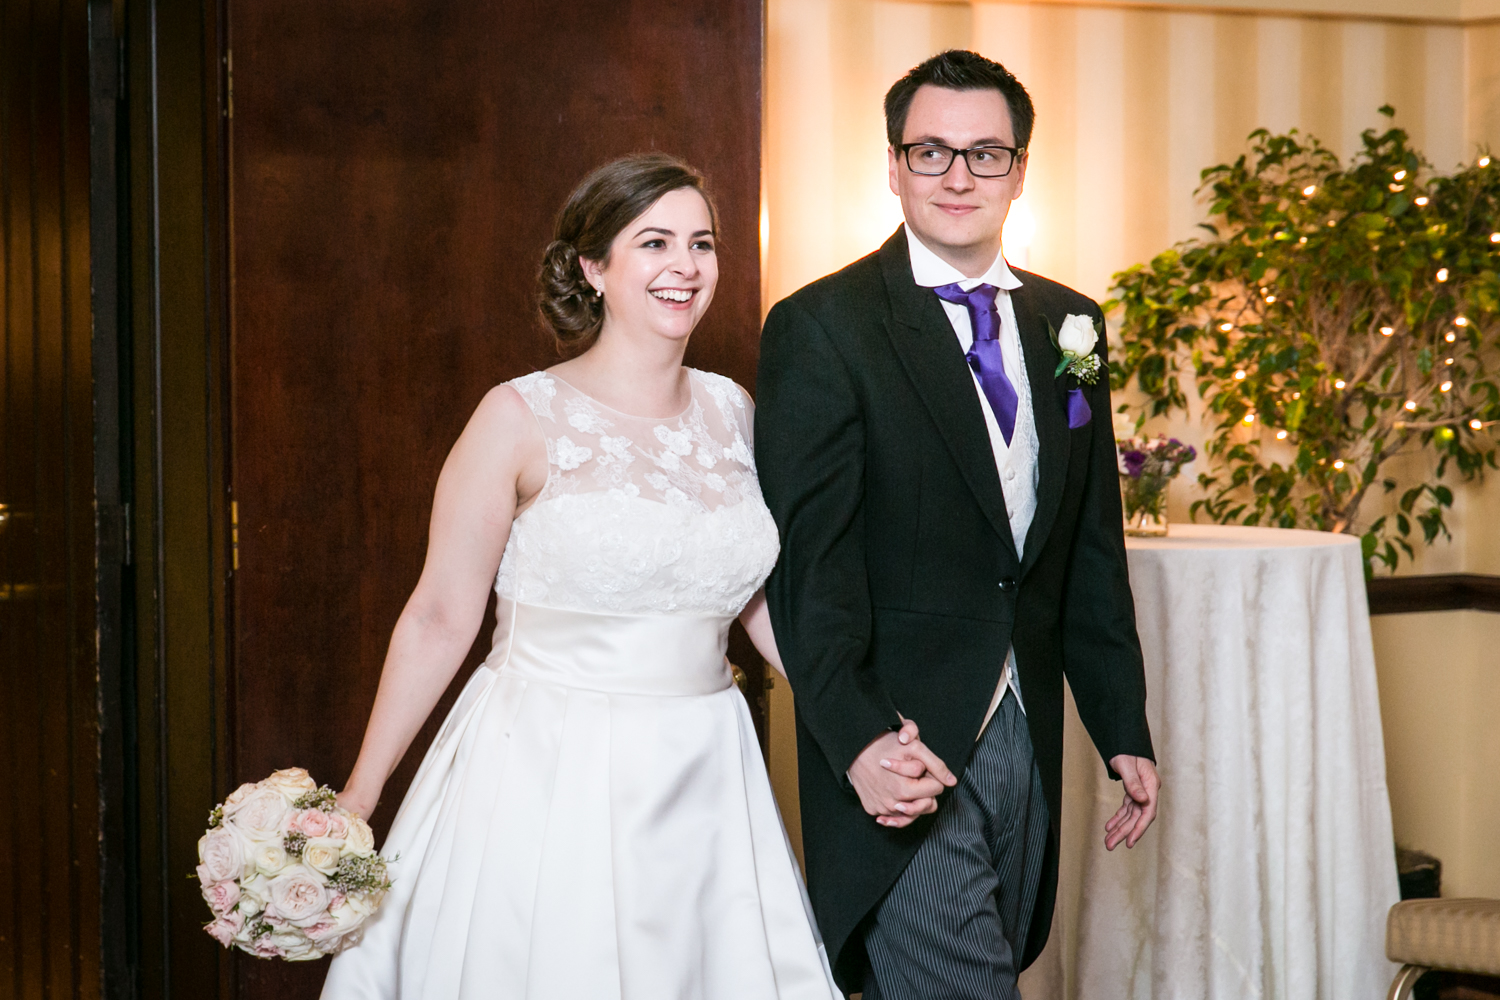 Bride and groom entering reception at a Nassau Inn wedding